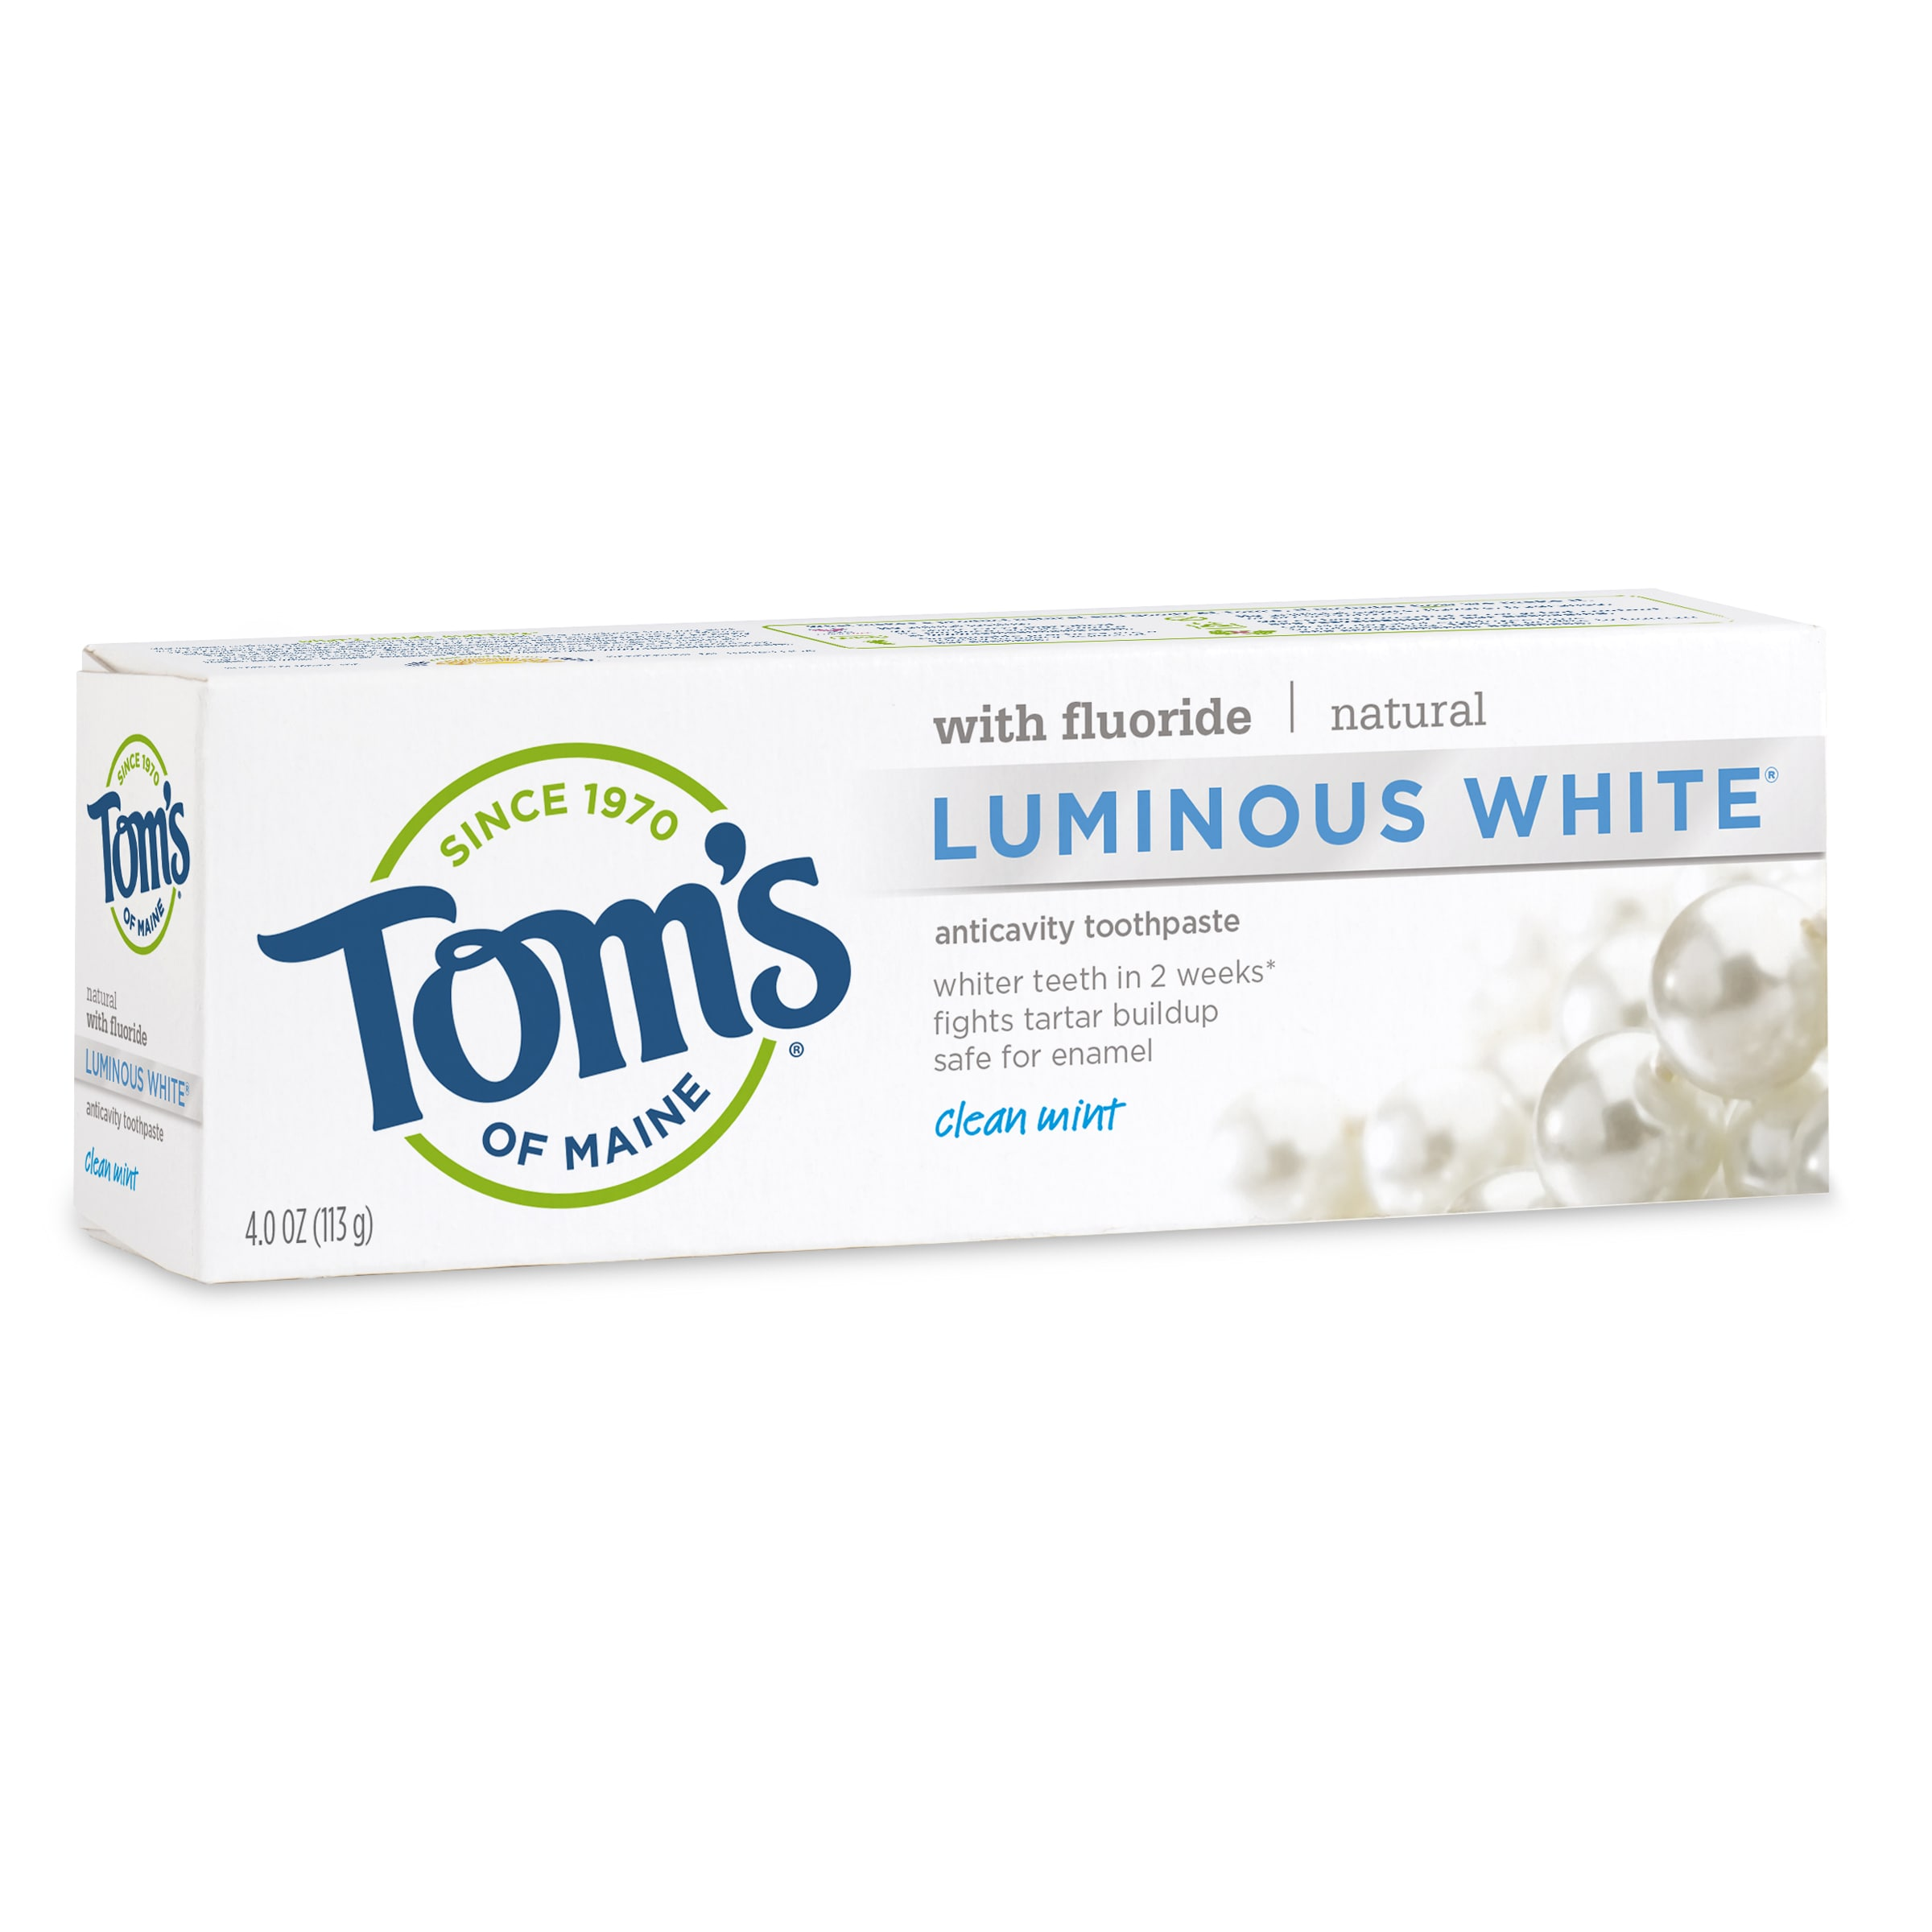 Luminous White® Toothpaste